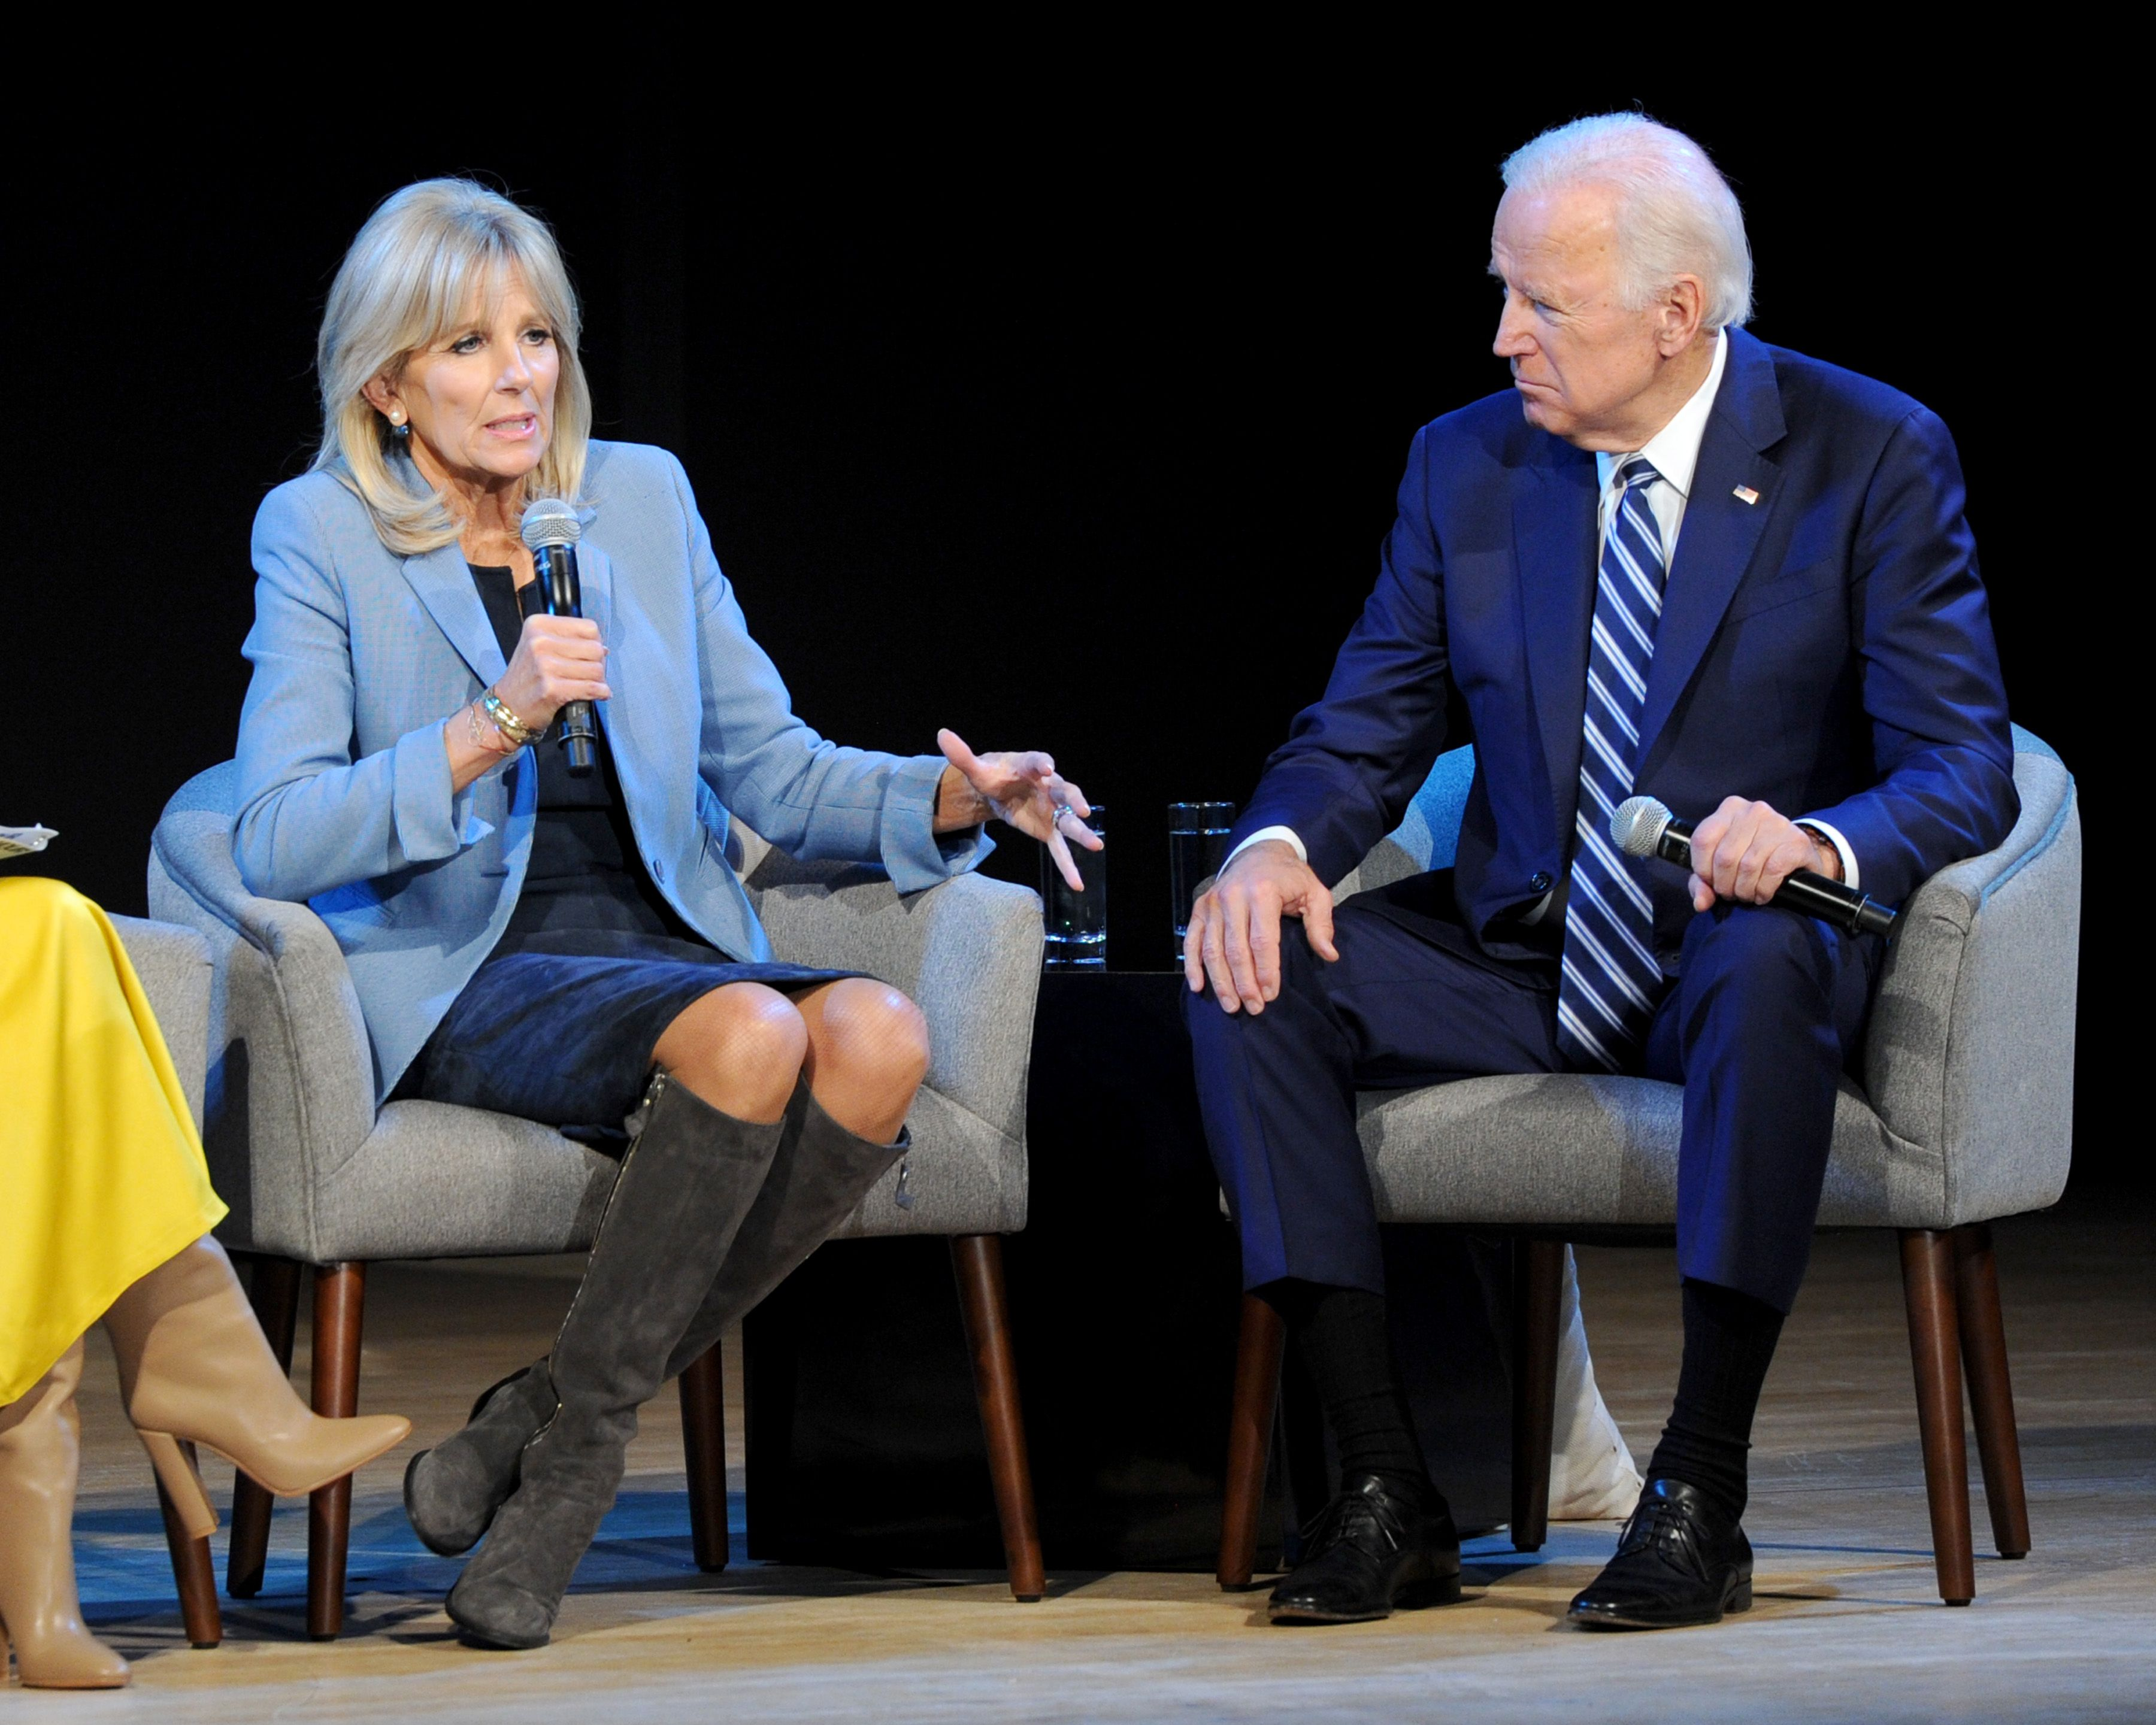 Dr. Jill Biden, and Joe Biden speak onstage during Glamour Celebrates 2017 Women Of The Year Live Summit at Brooklyn Museum on November 13, 2017 | Getty Images